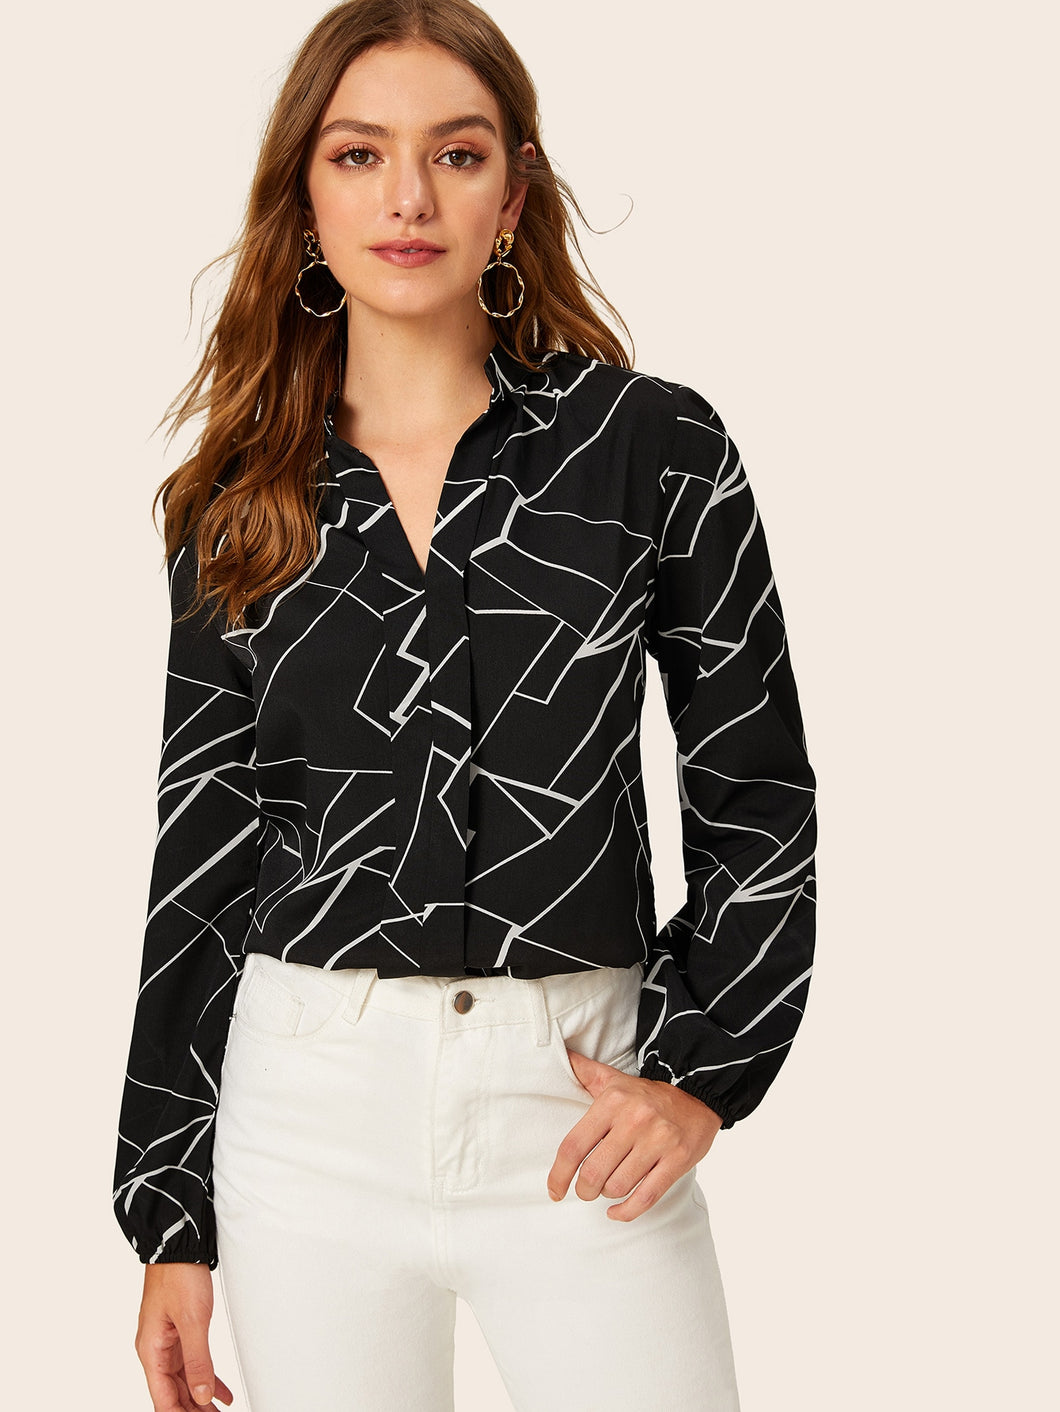 RANDOM STRIPE PRINT NOTCHED NECK BLOUSE